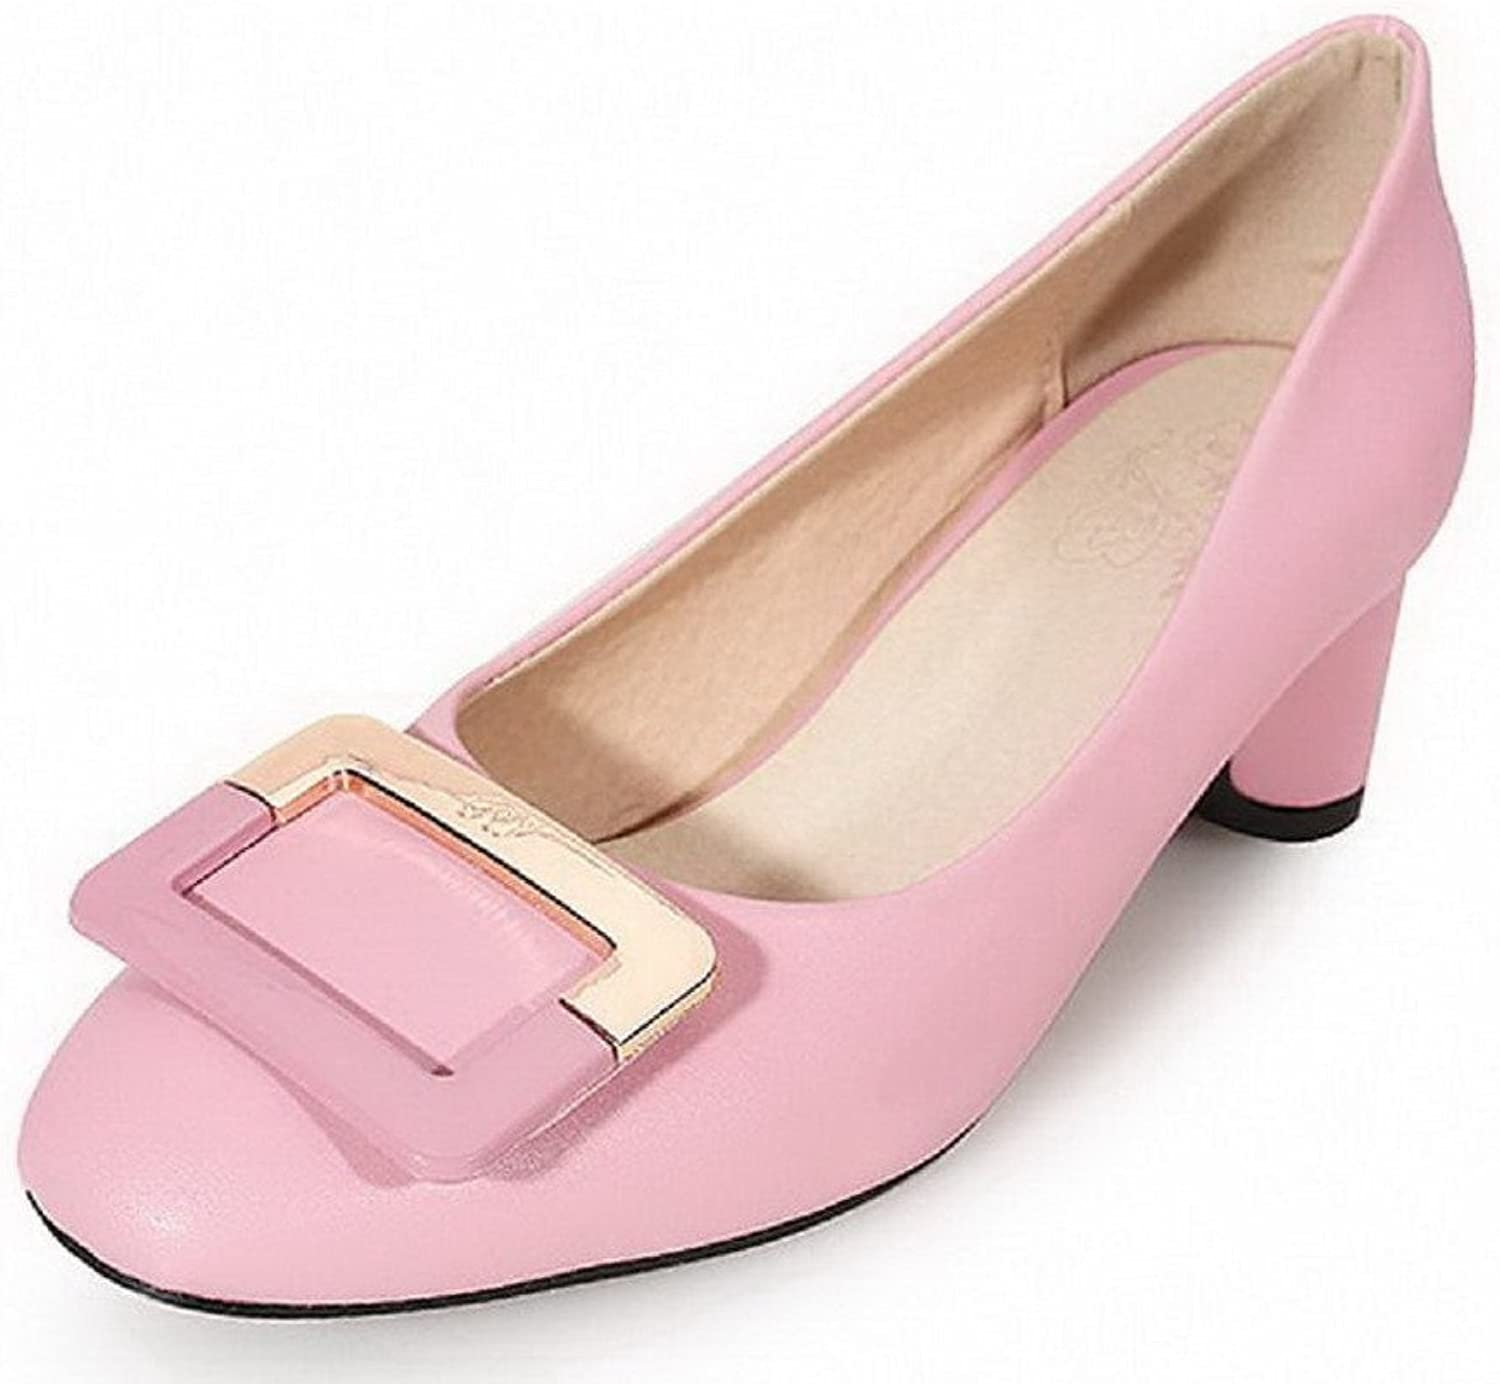 WeenFashion Women's Kitten Heels Solid Pull On Square Closed Toe Pumps-shoes